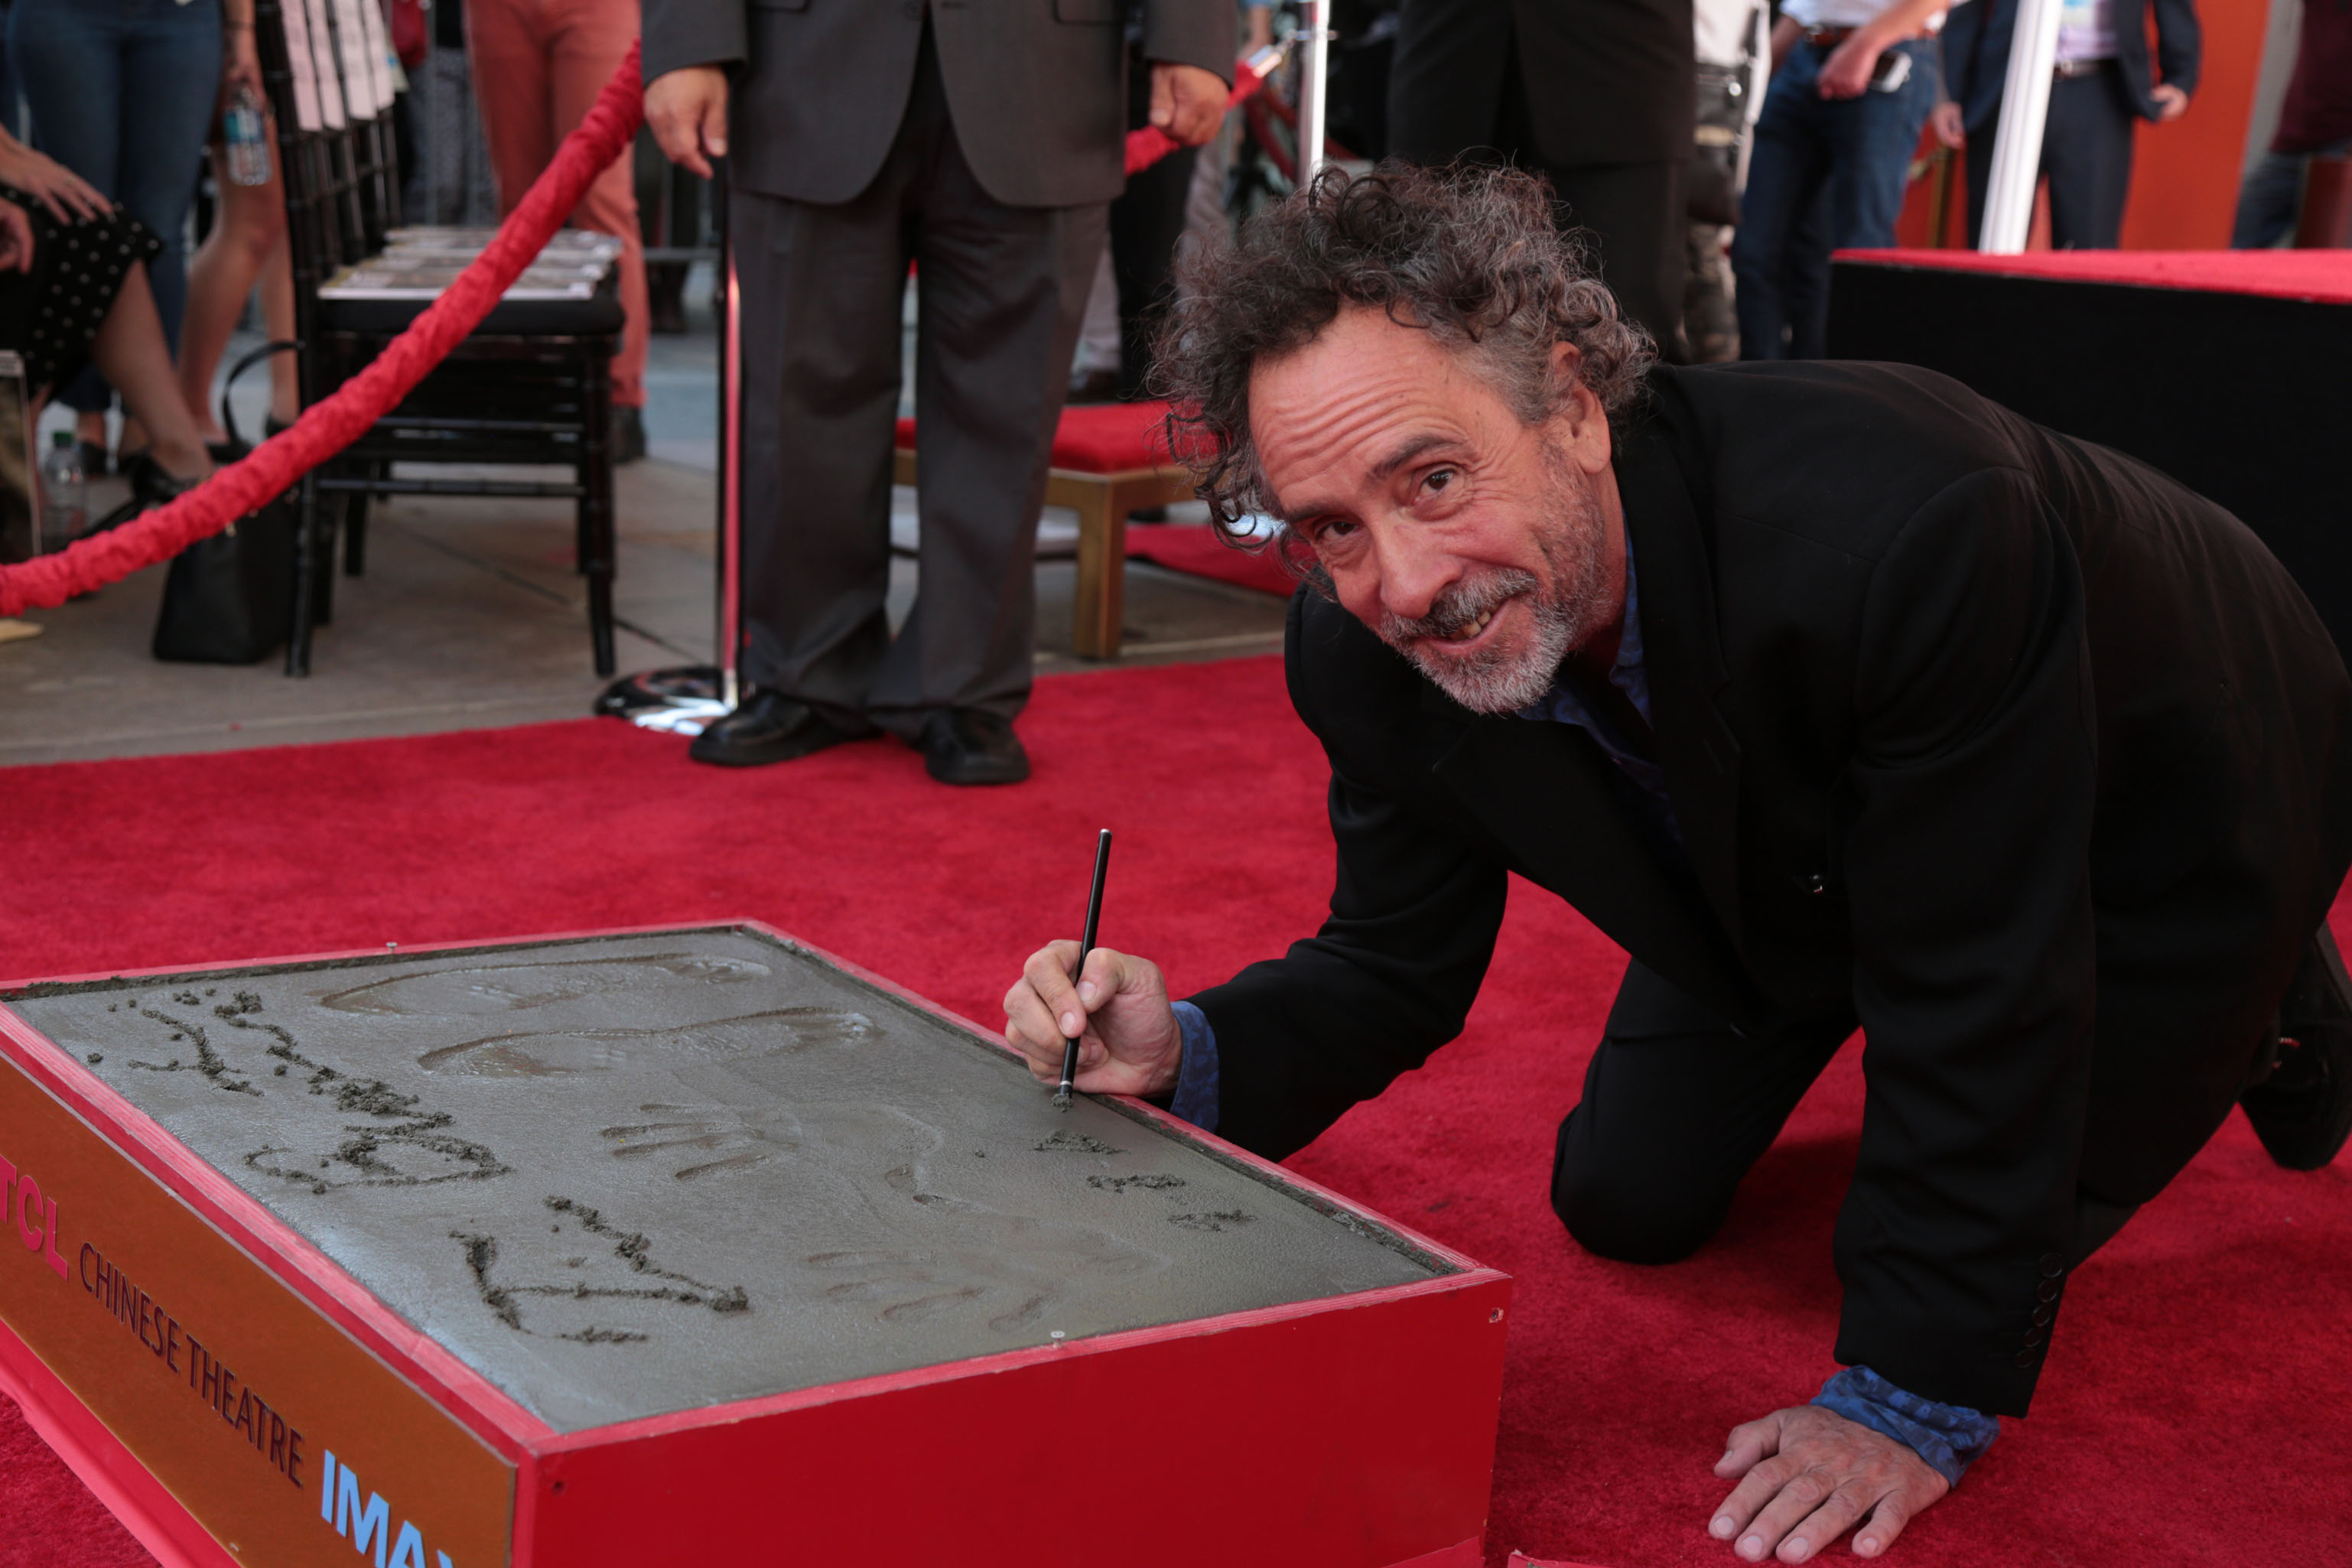 """Tim Burton celebrates at his Hand & Footprint Ceremony presented by 20th Century Fox in celebration of his newest film """"Miss Peregrine's Home for Peculiar Children"""" at the TCL Chinese Theatre in Los Angeles, CA on September 8, 2016. (Photo: Alex J. Berliner/ABImages)"""